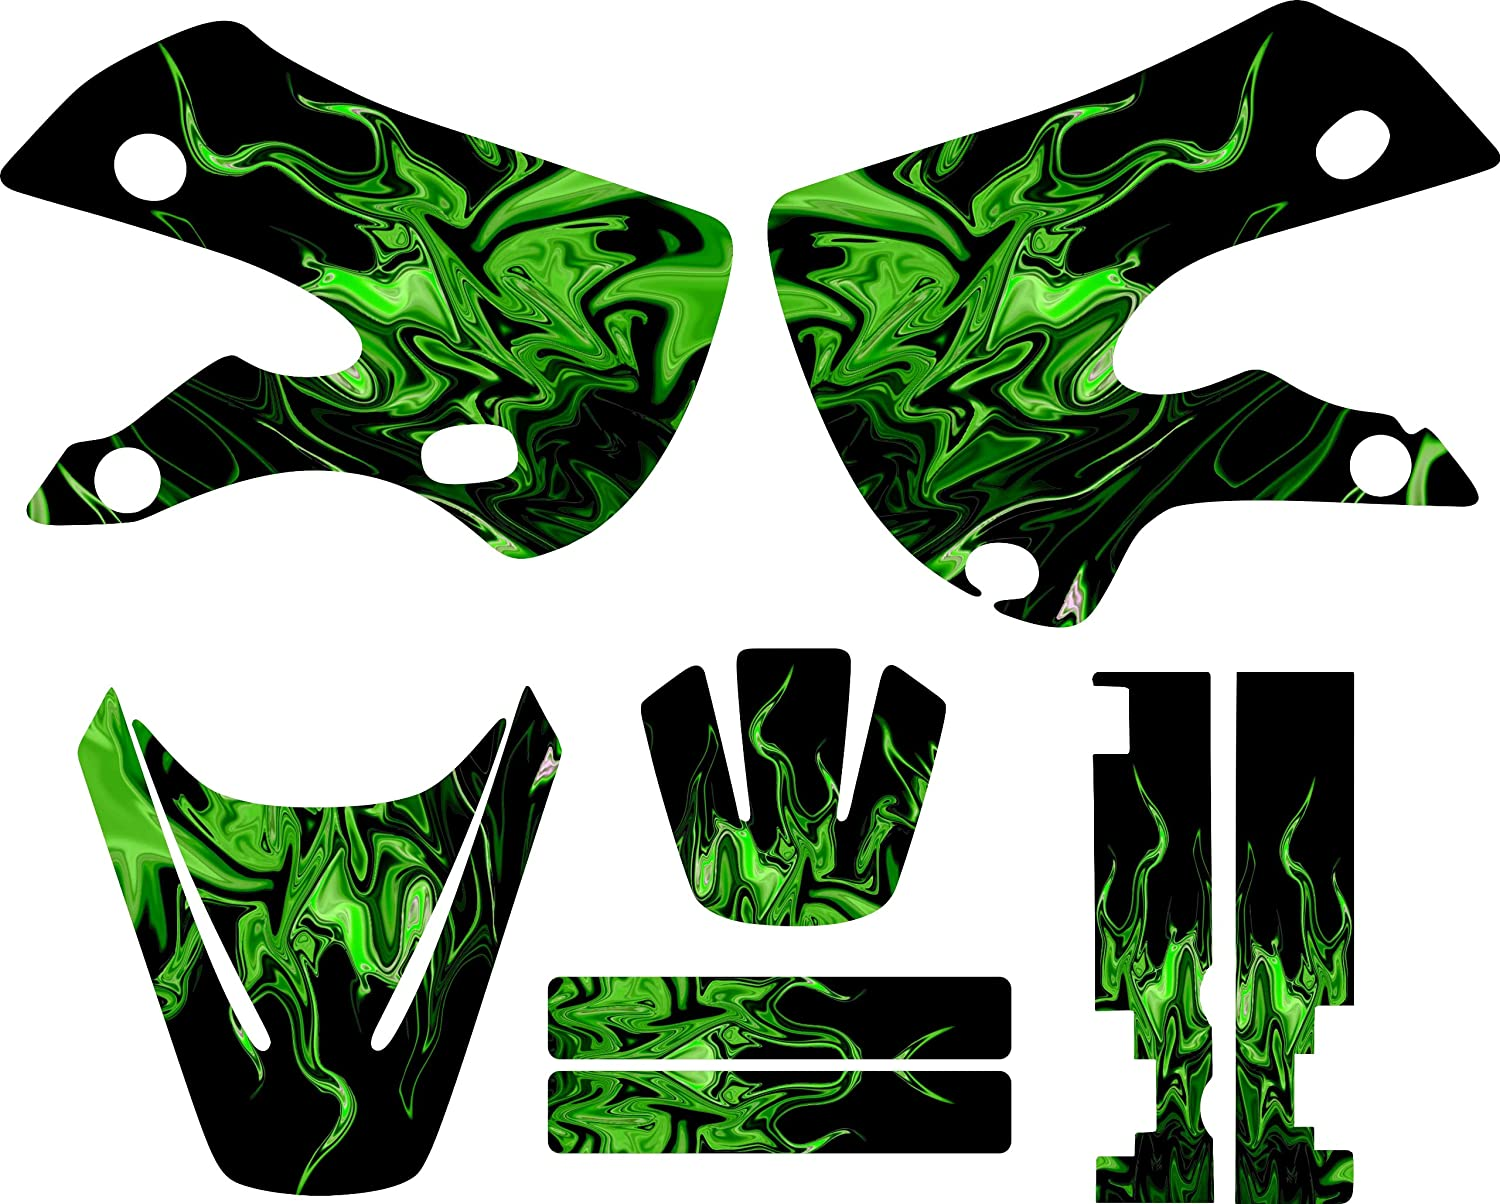 Kawaskai Kx65 Klx110 Graphic Kit Green Flames Graphics Decal Sticker Mx Klx 110 Kx 65